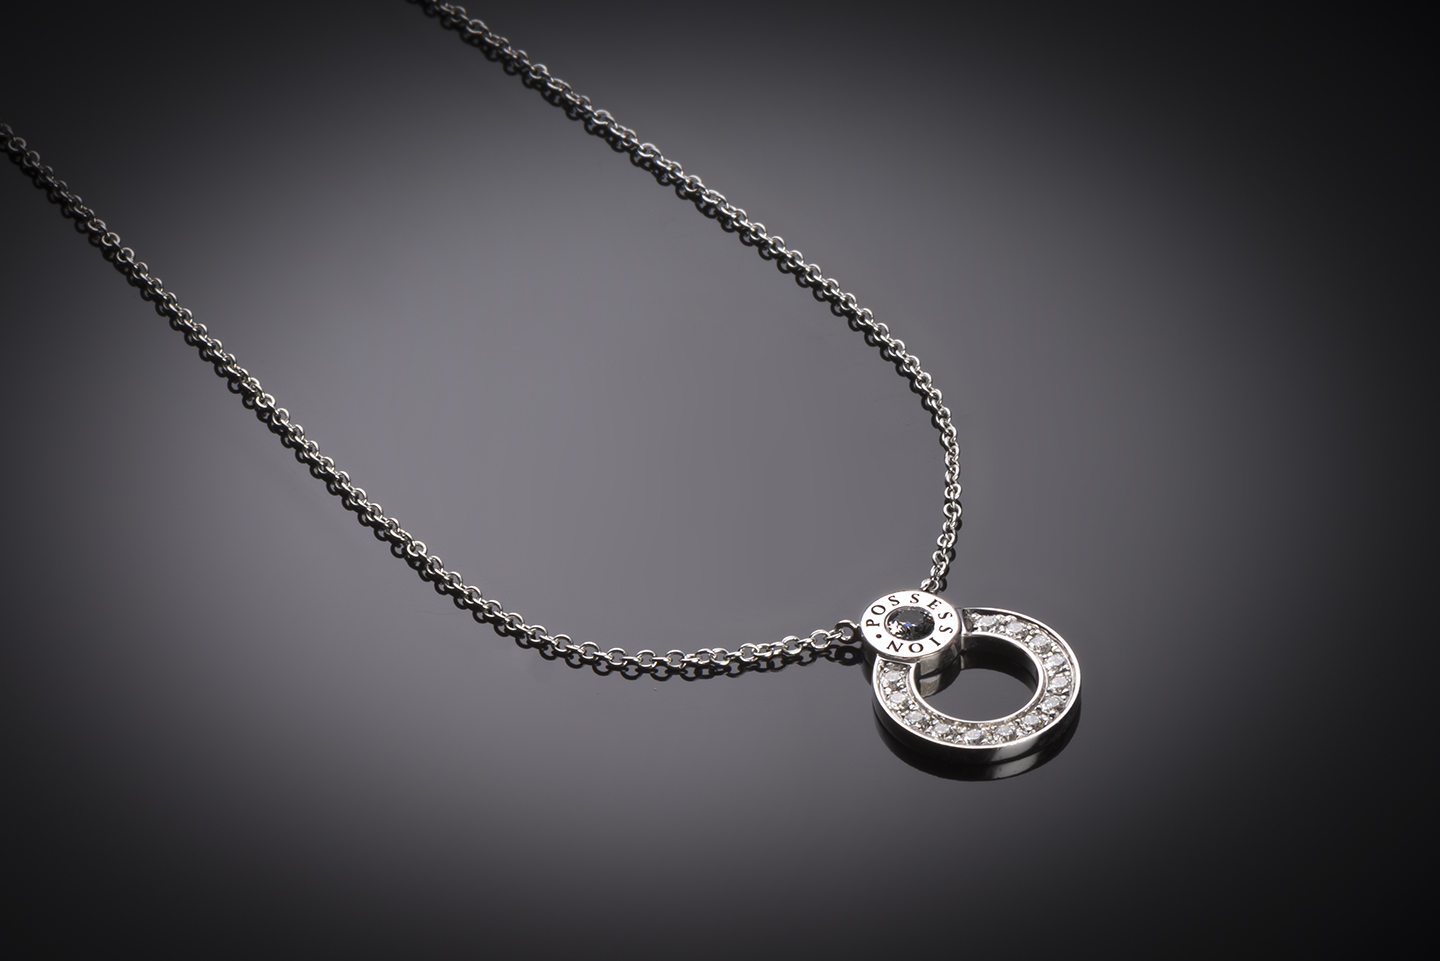 Collier Piaget diamants-1